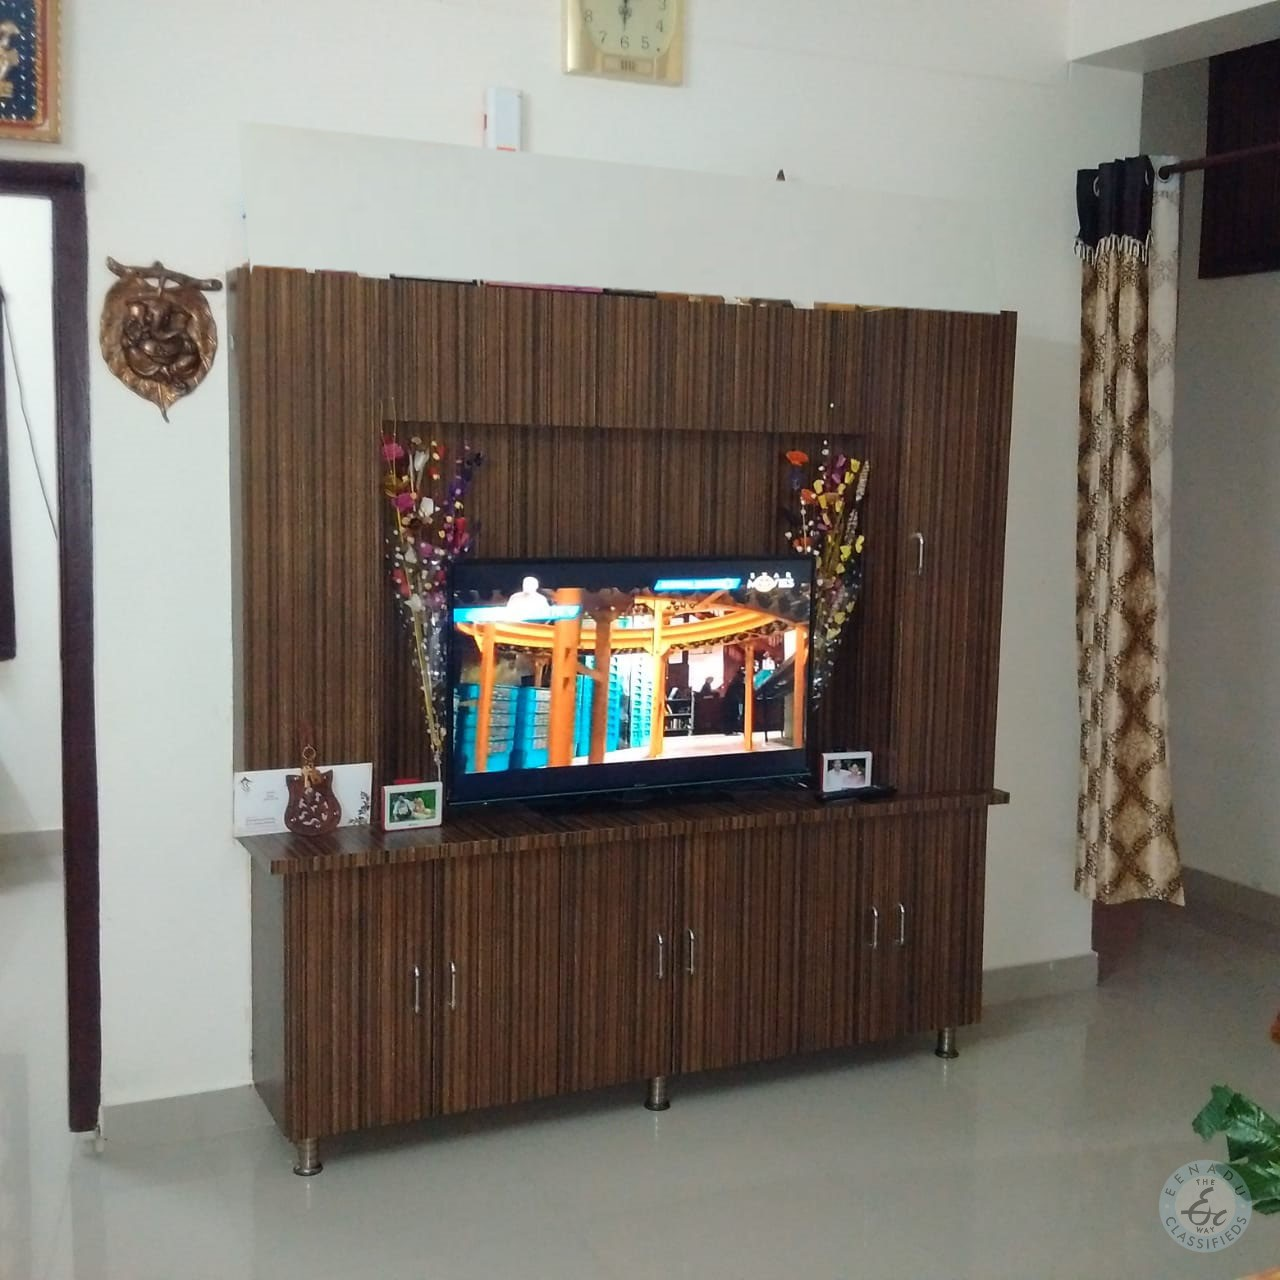 2 Bhk Flat For Rent In Nandyal Kurnool